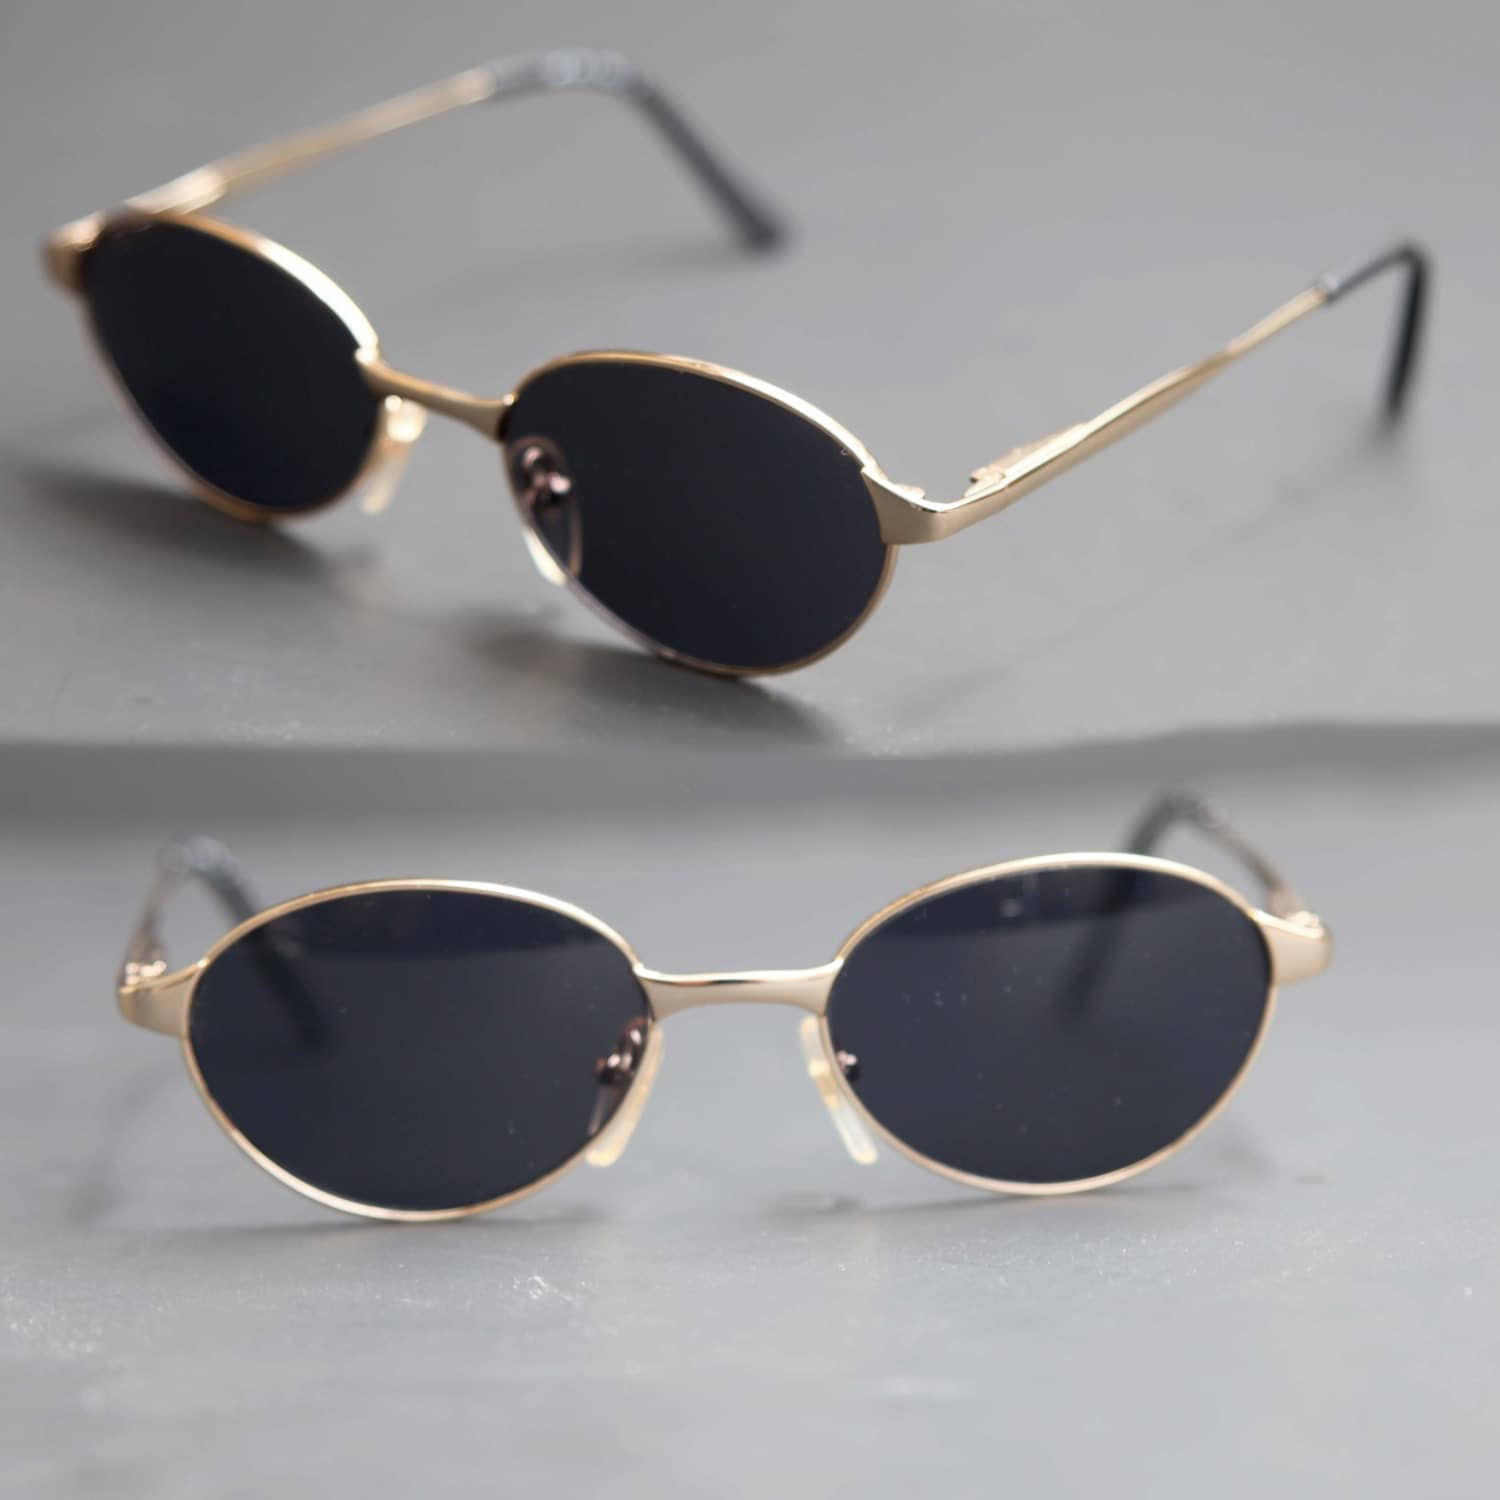 80s Oval Sunglasses DKNY Gold Wire Rim with Dark Lenses Light